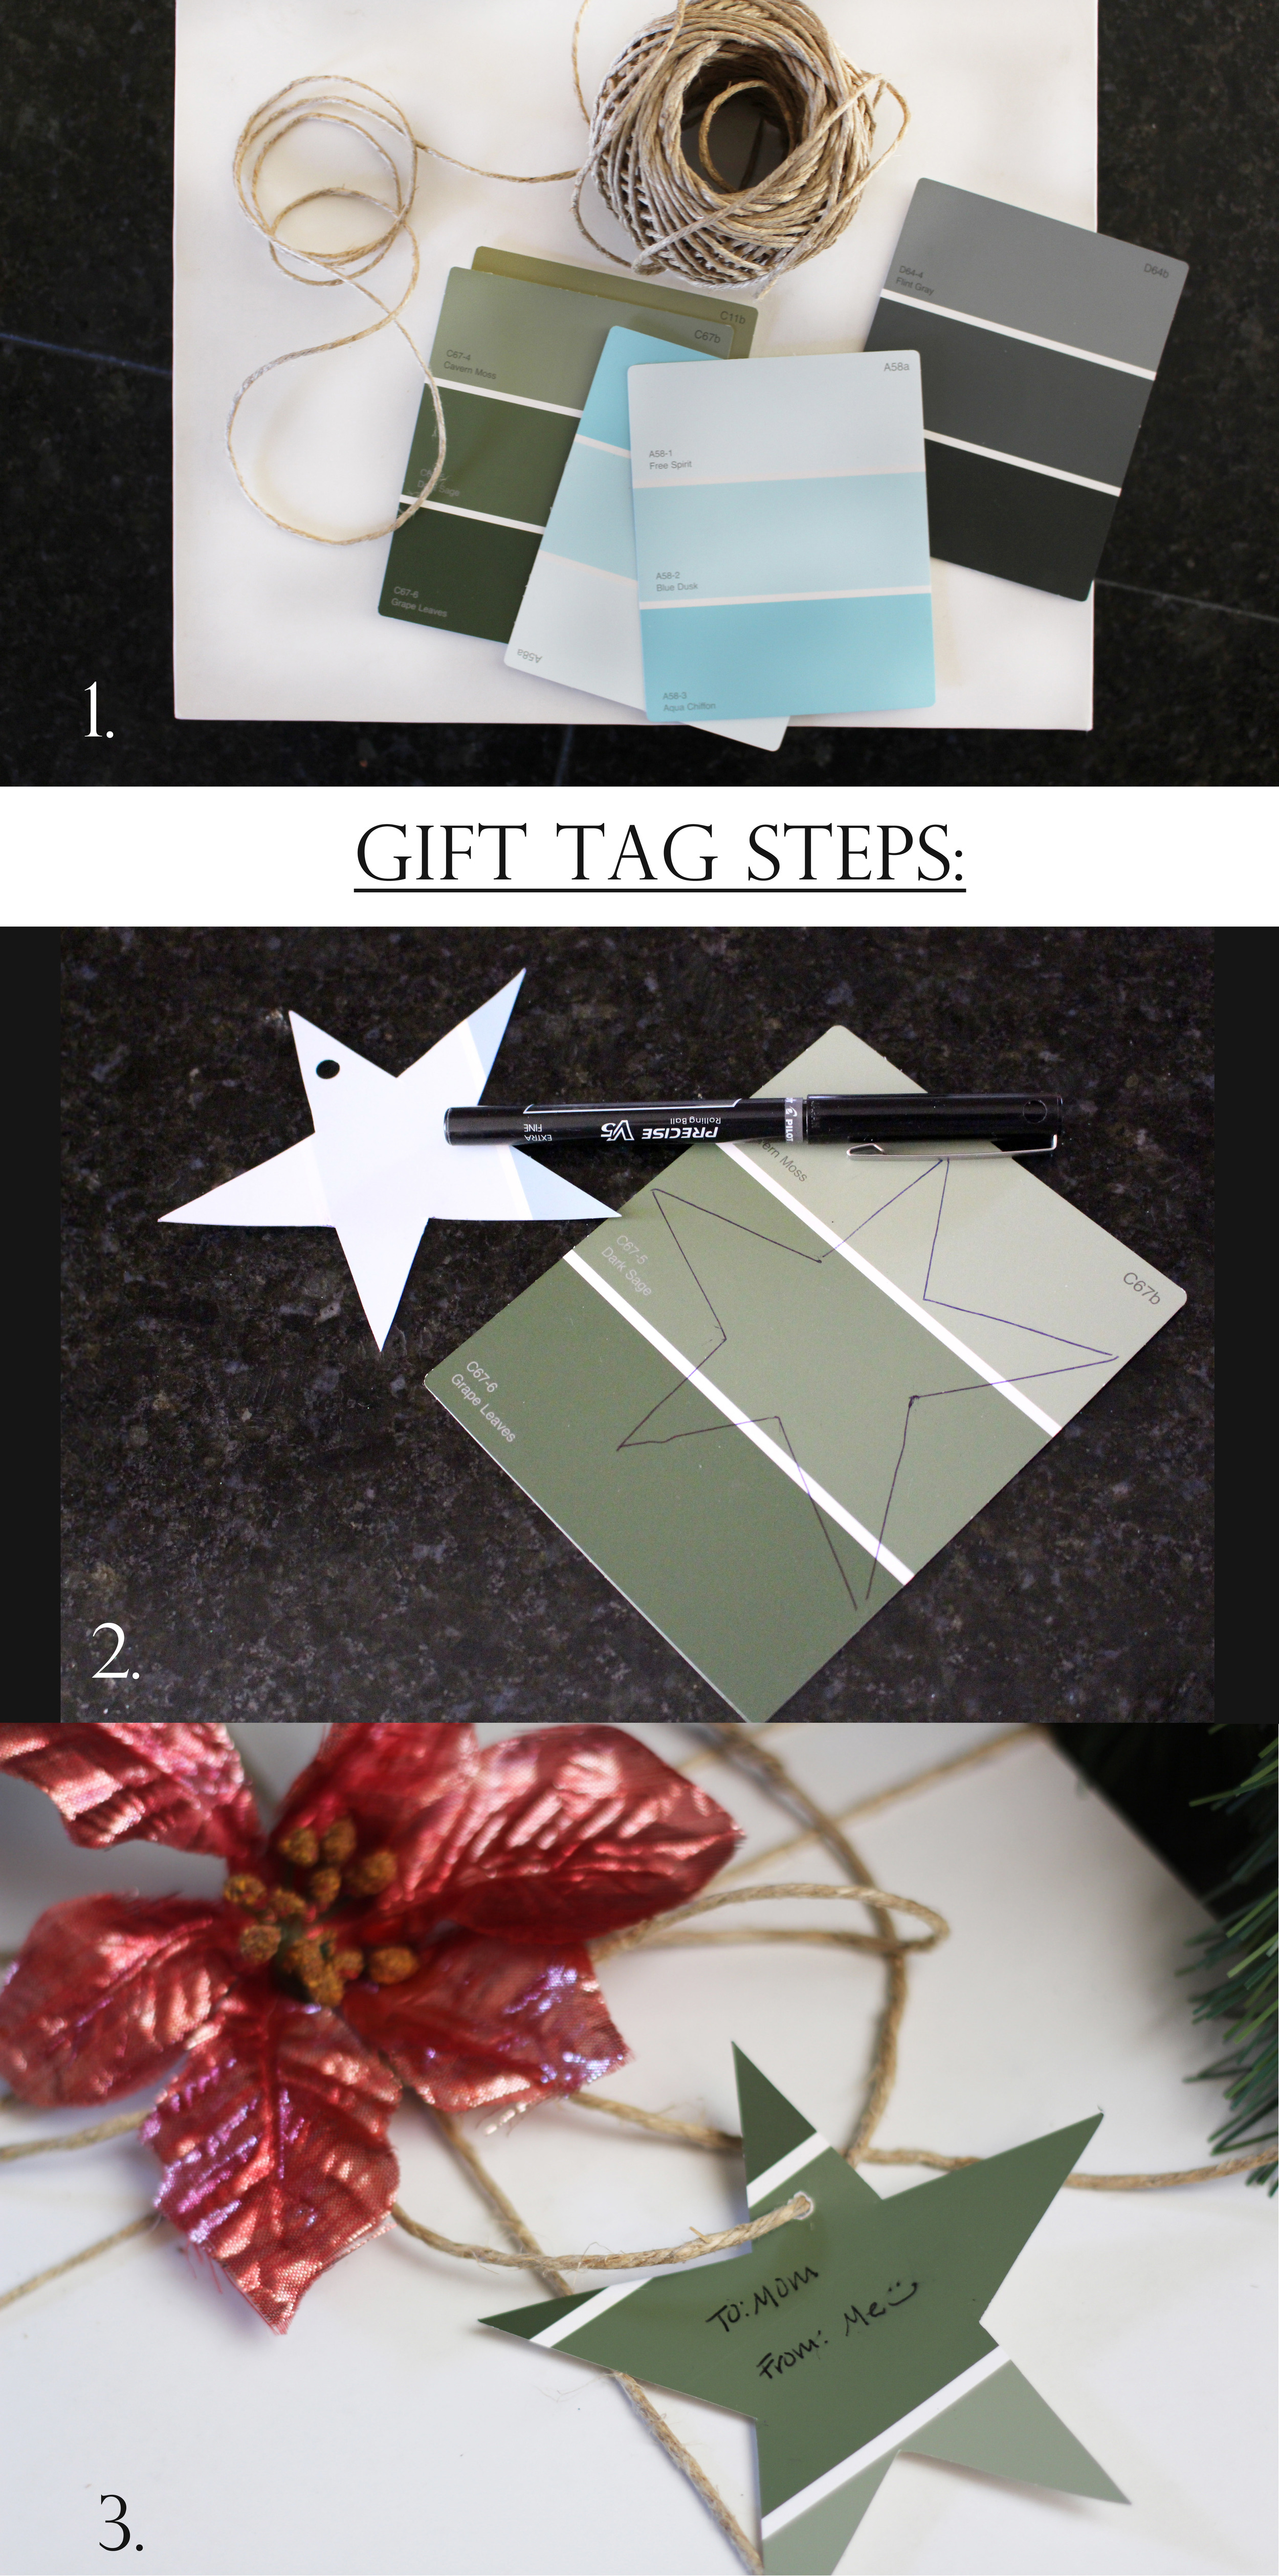 Holiday gift tags.2